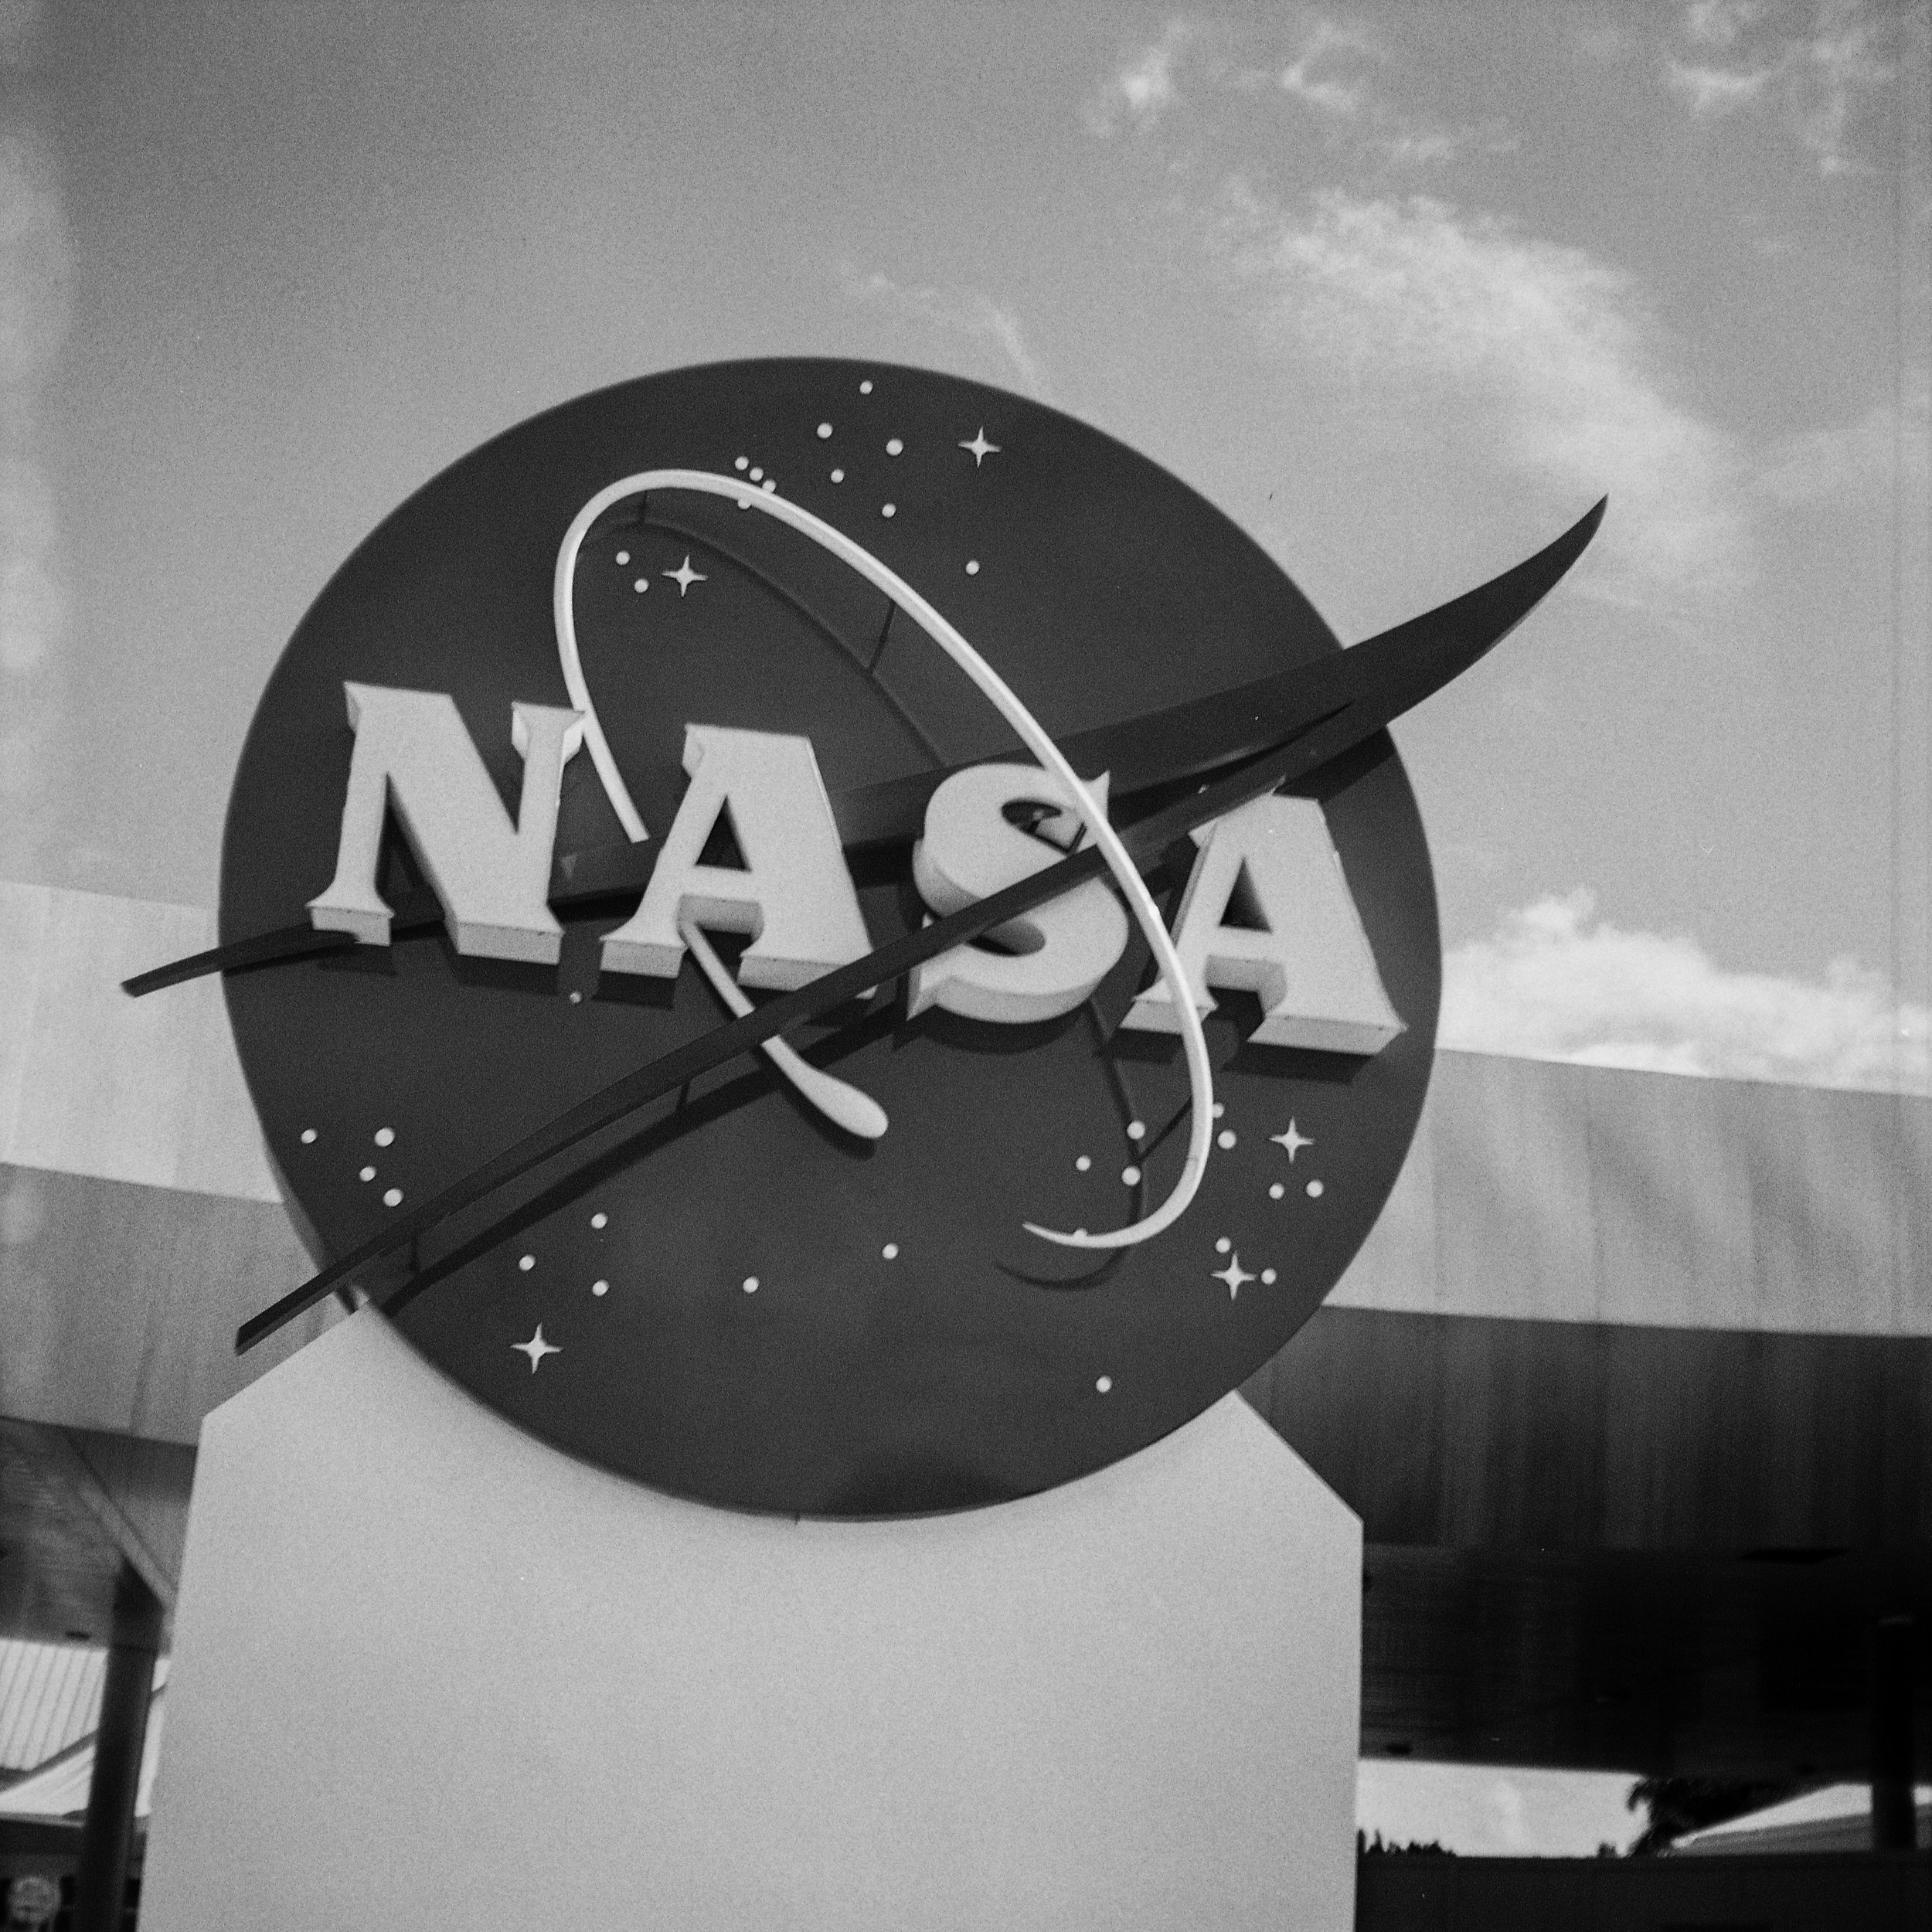 1949 Kodak Brownie Hawkeye Photo Medium Format 620 Film Zoe Kissel Photo Kennedy Space Center NASA